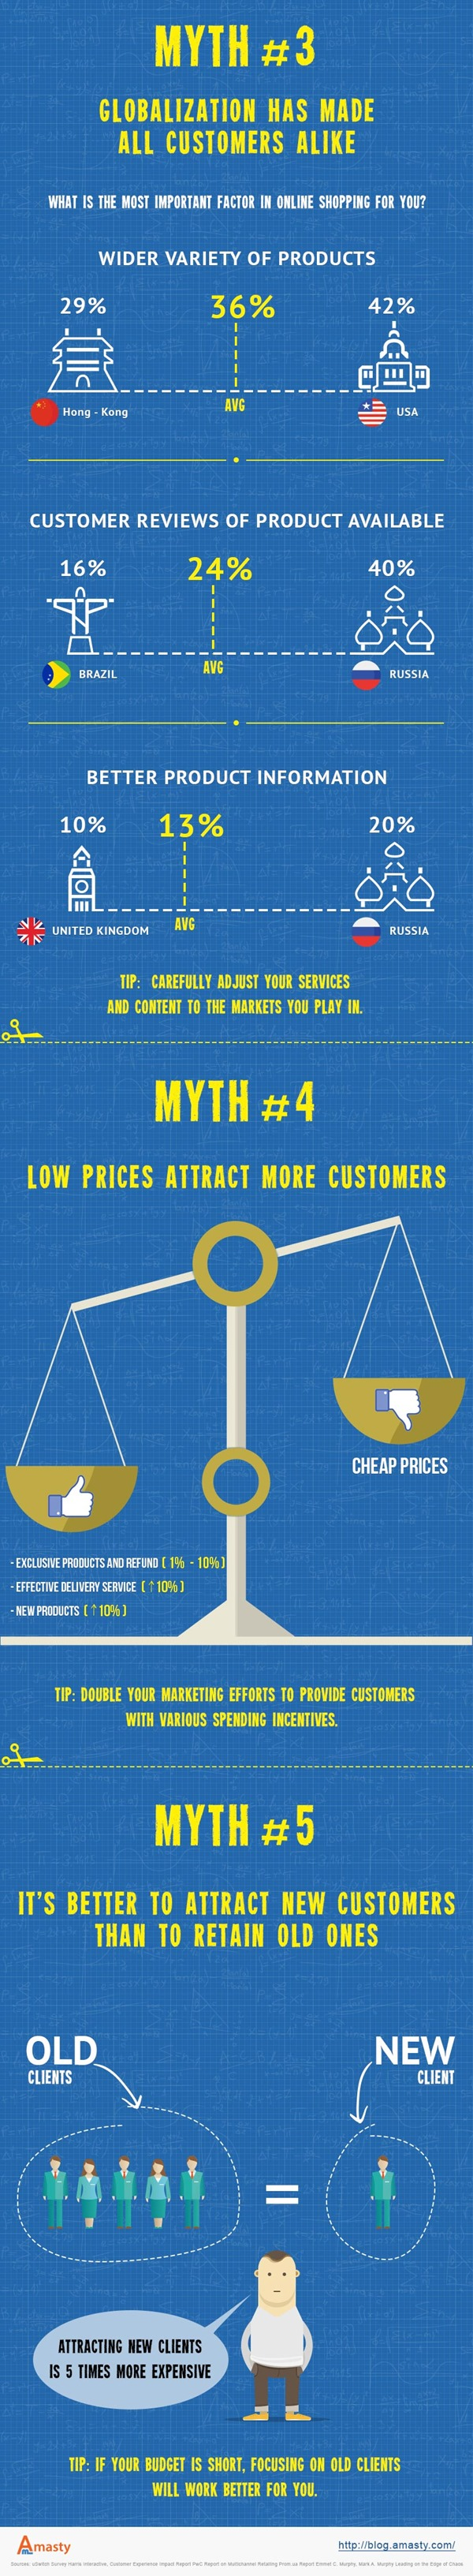 info-5-myths-about-customer-service-2